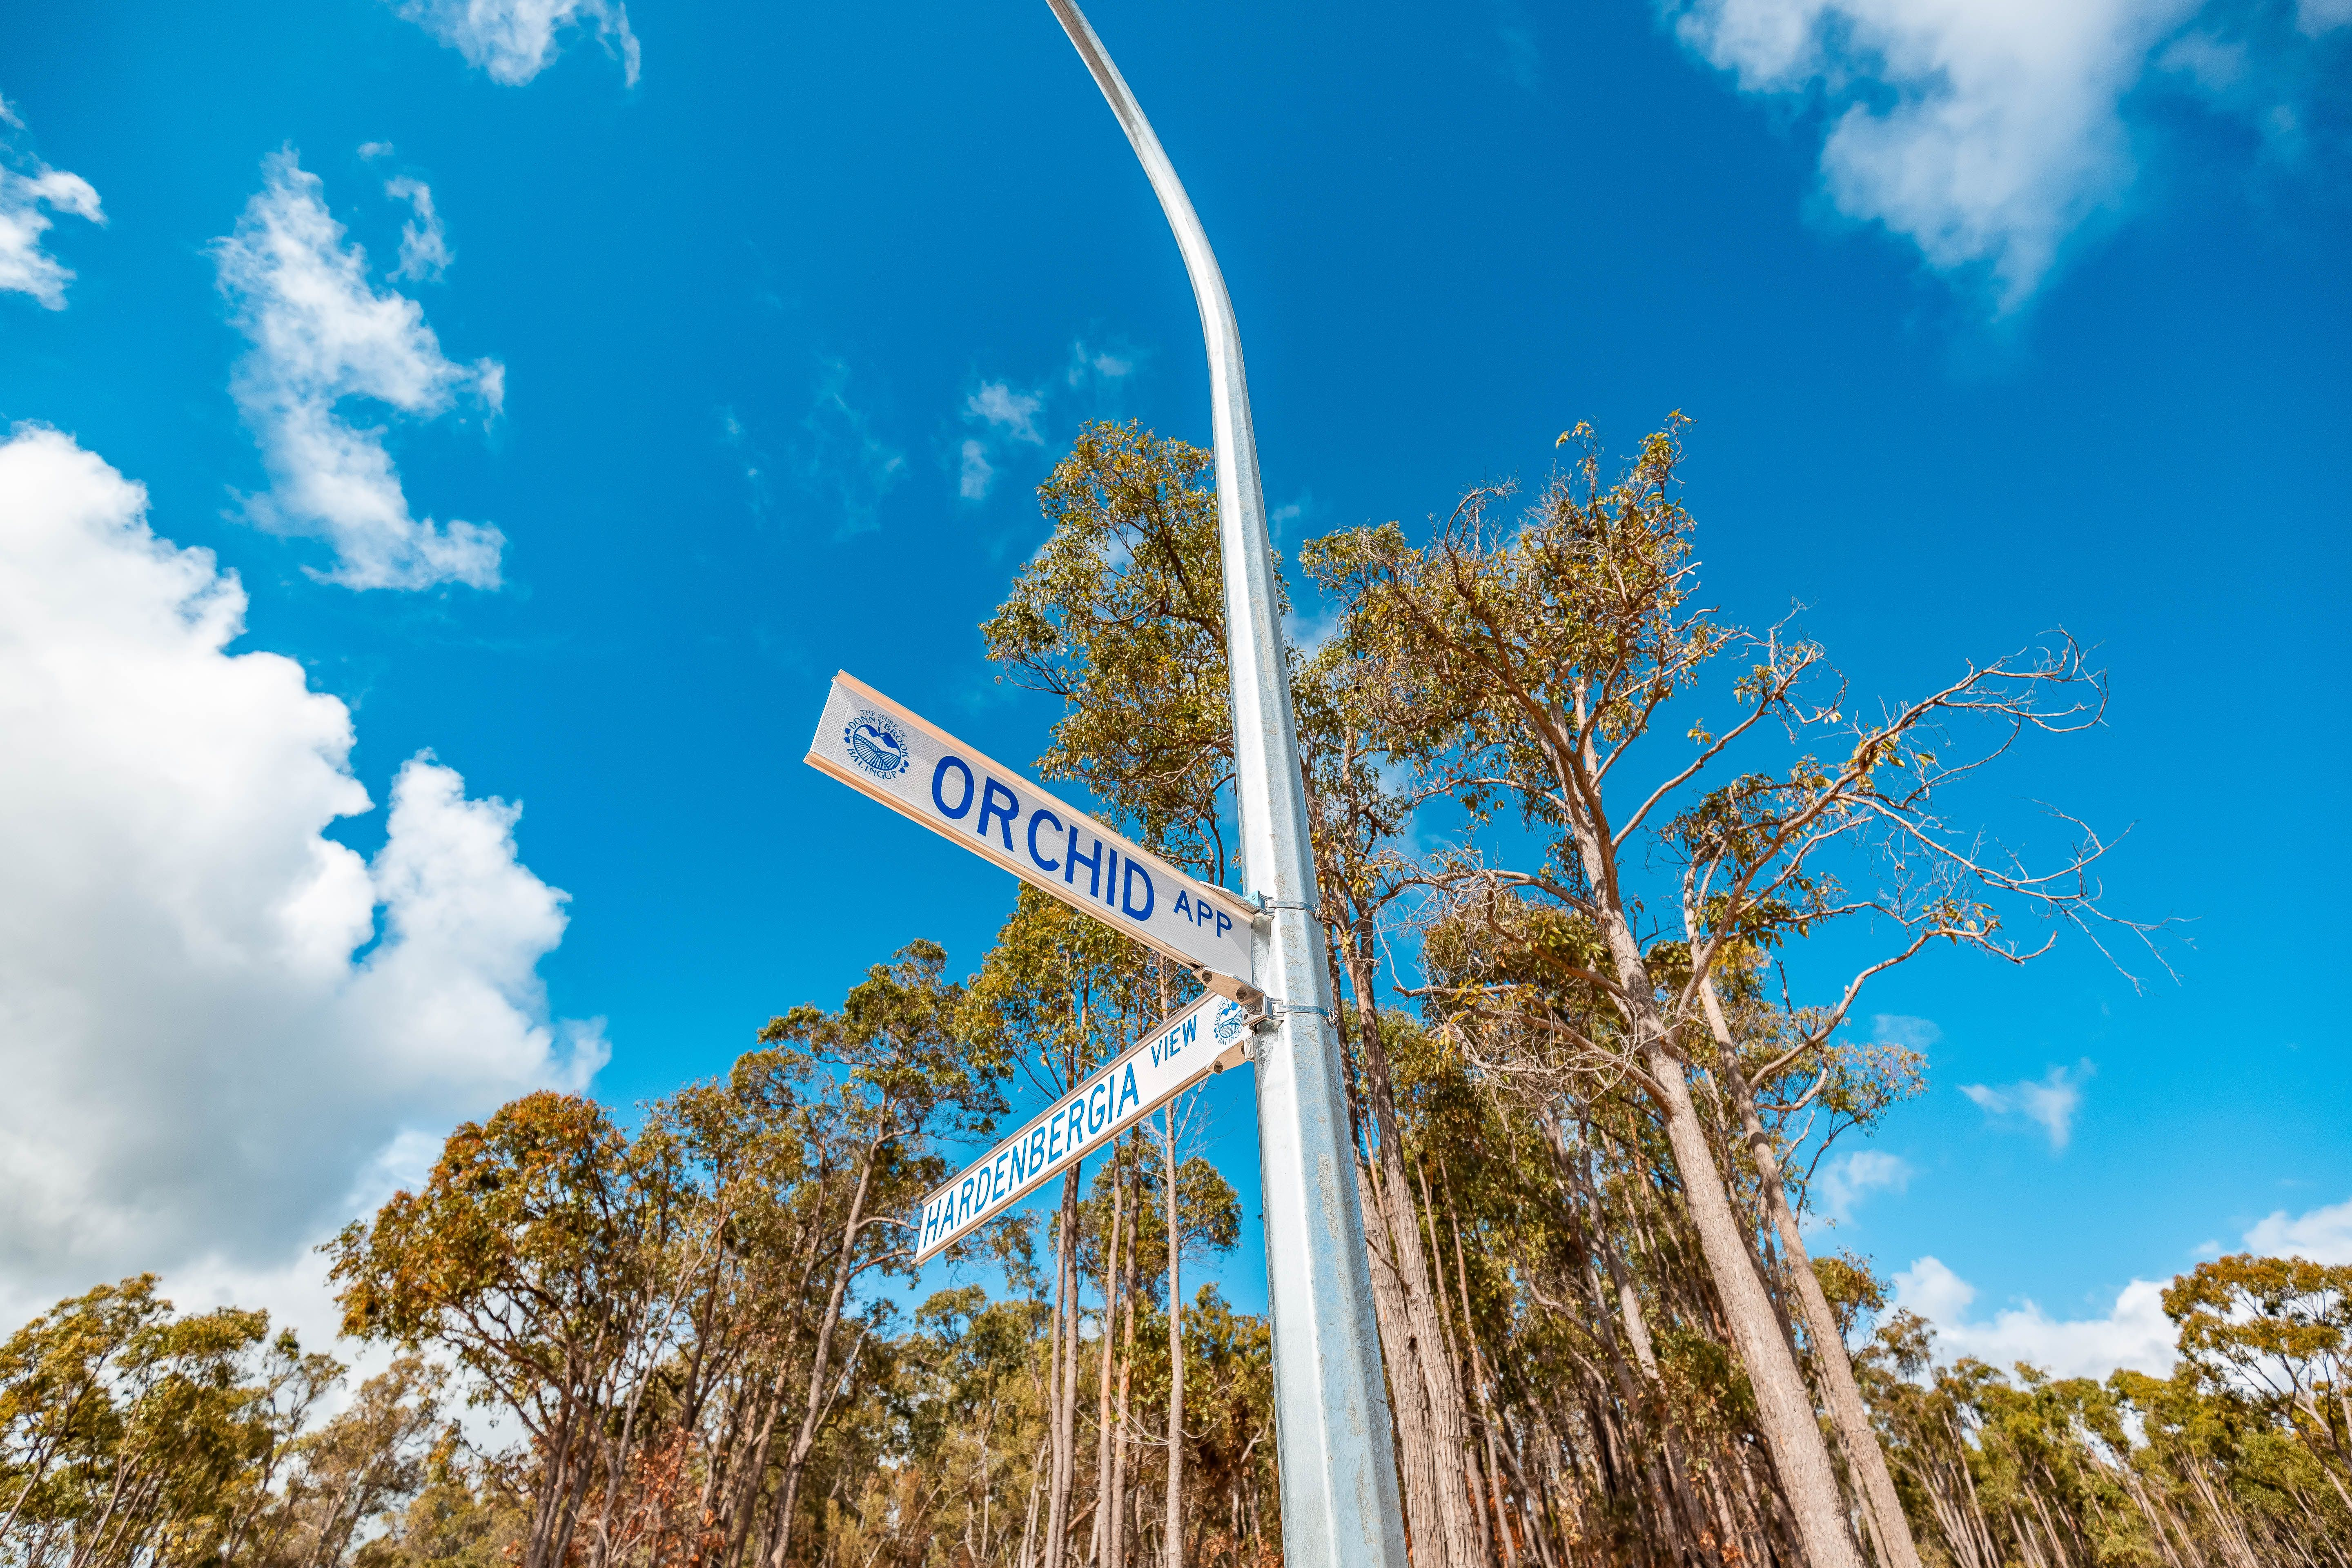 Lot/40 Orchid Approach, Donnybrook